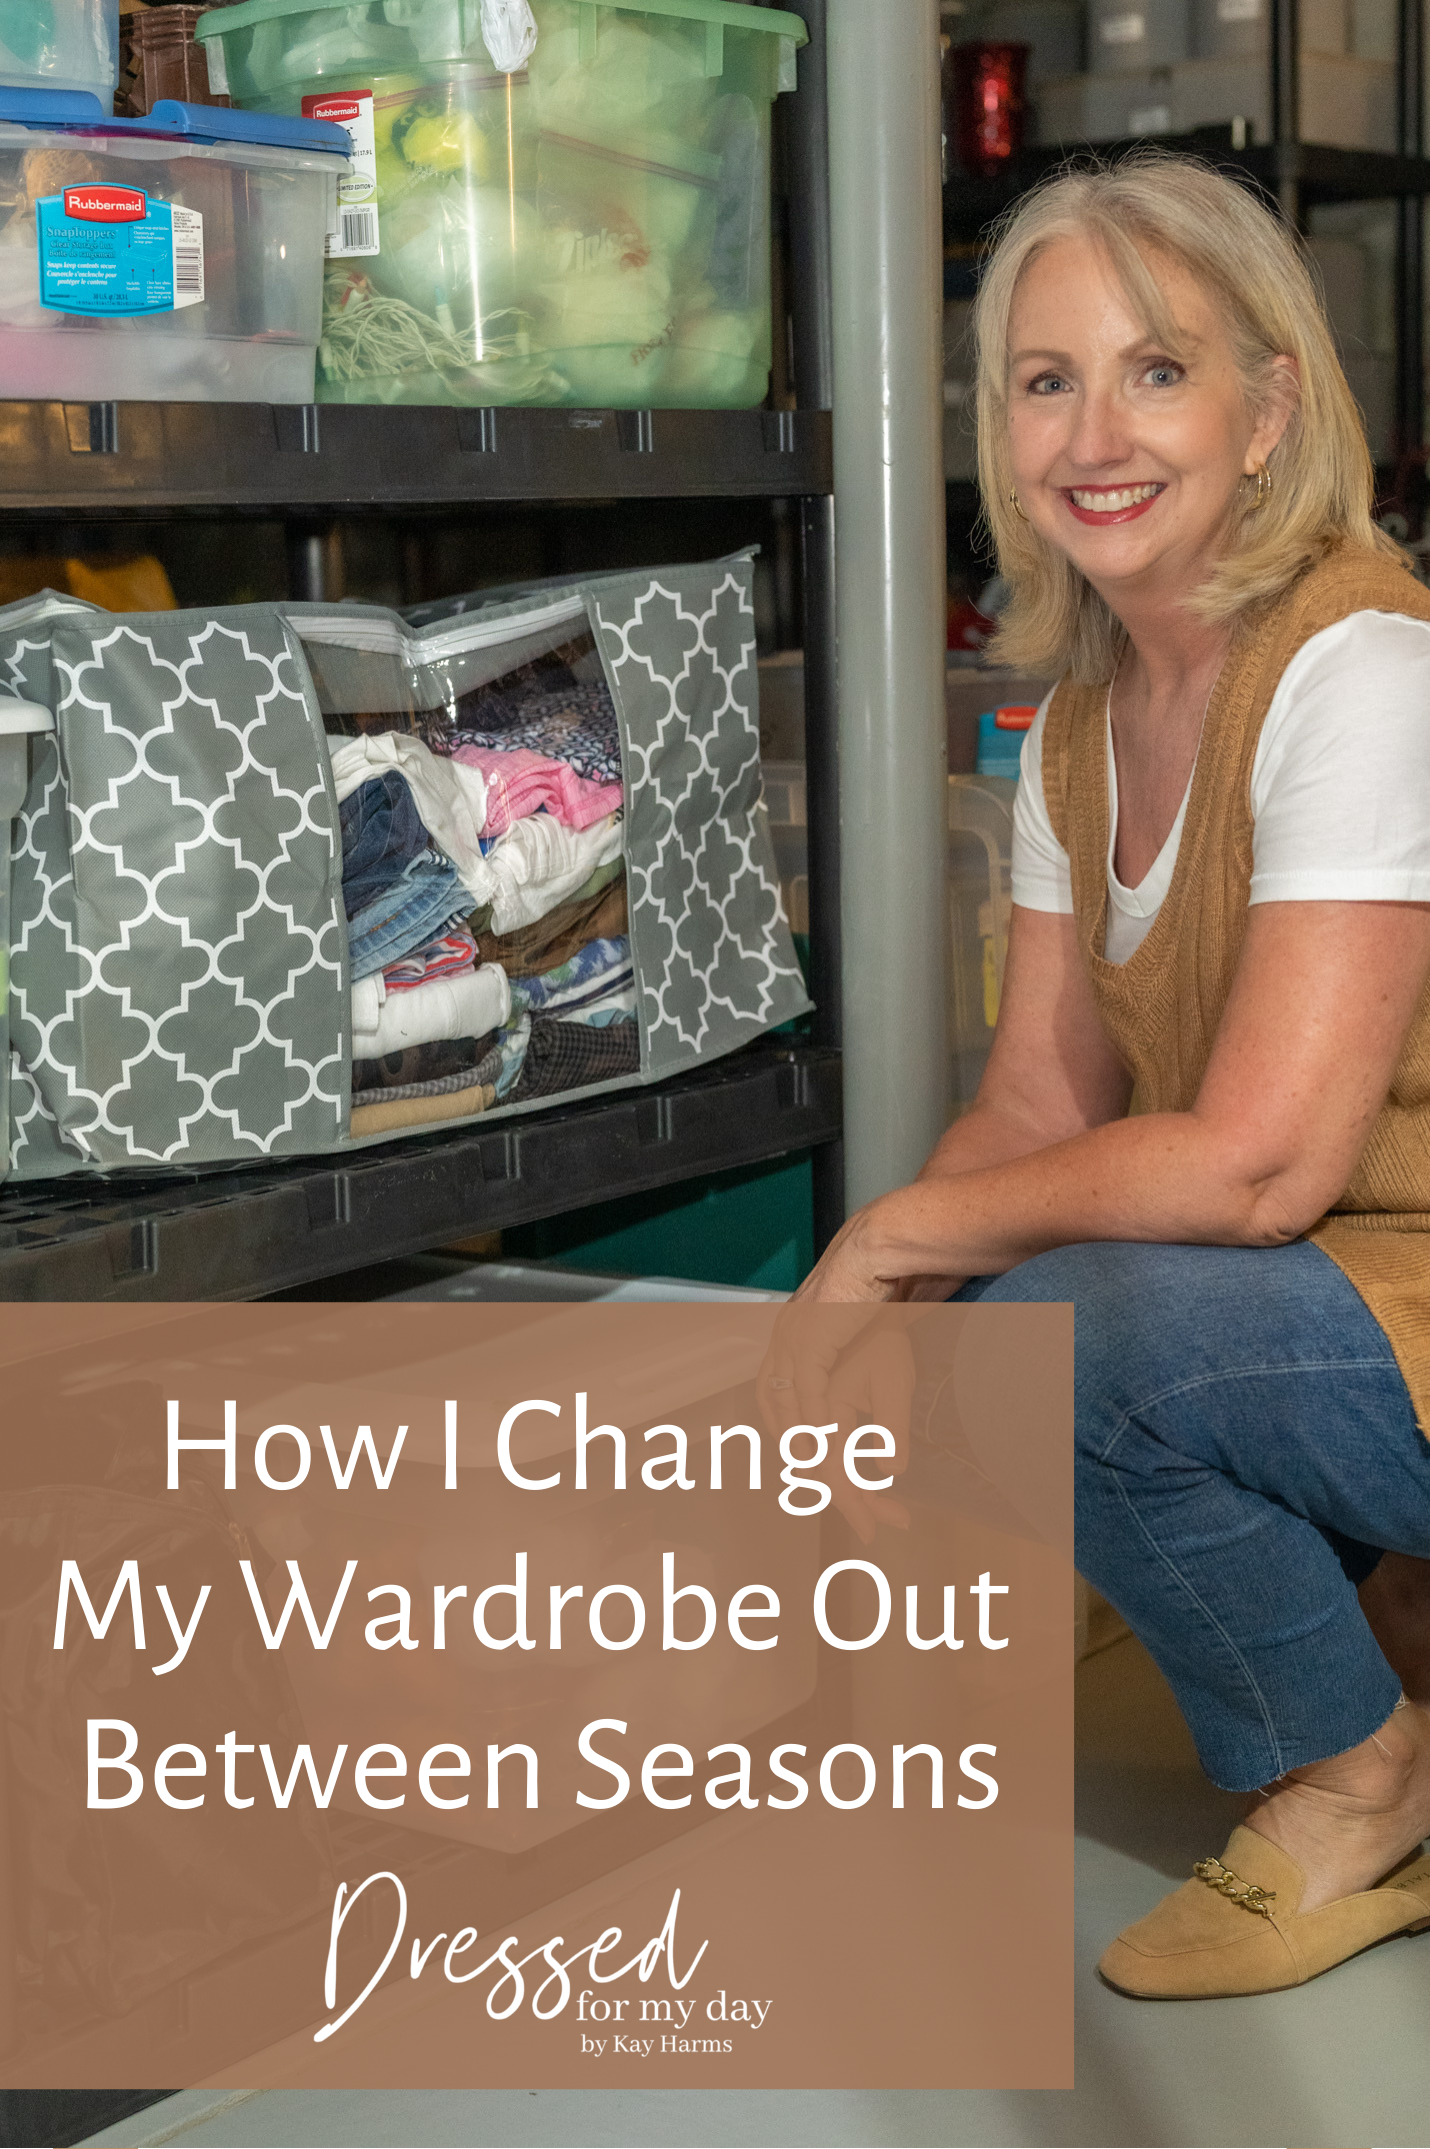 How I Change My Wardrobe Out Between Seasons